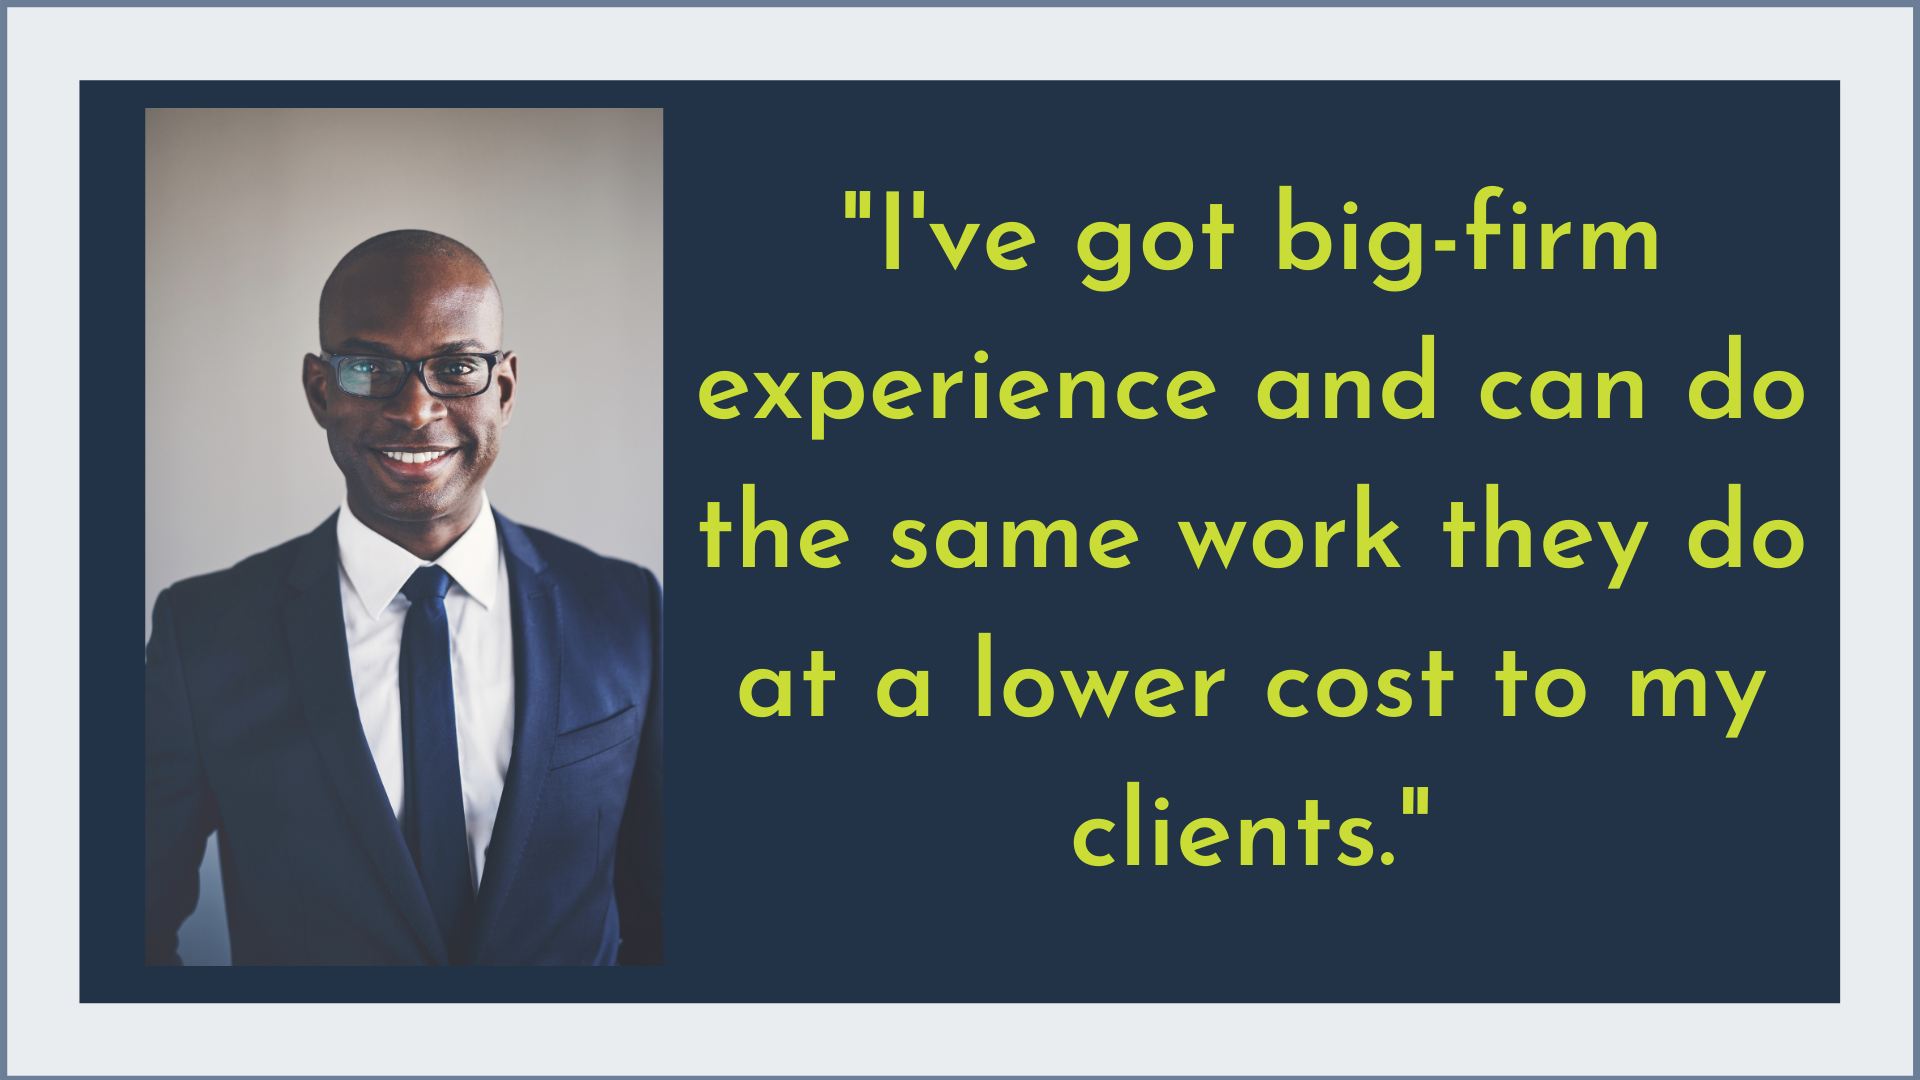 I've got big firm experience and can do the same work they do at a lower cost to my clients.